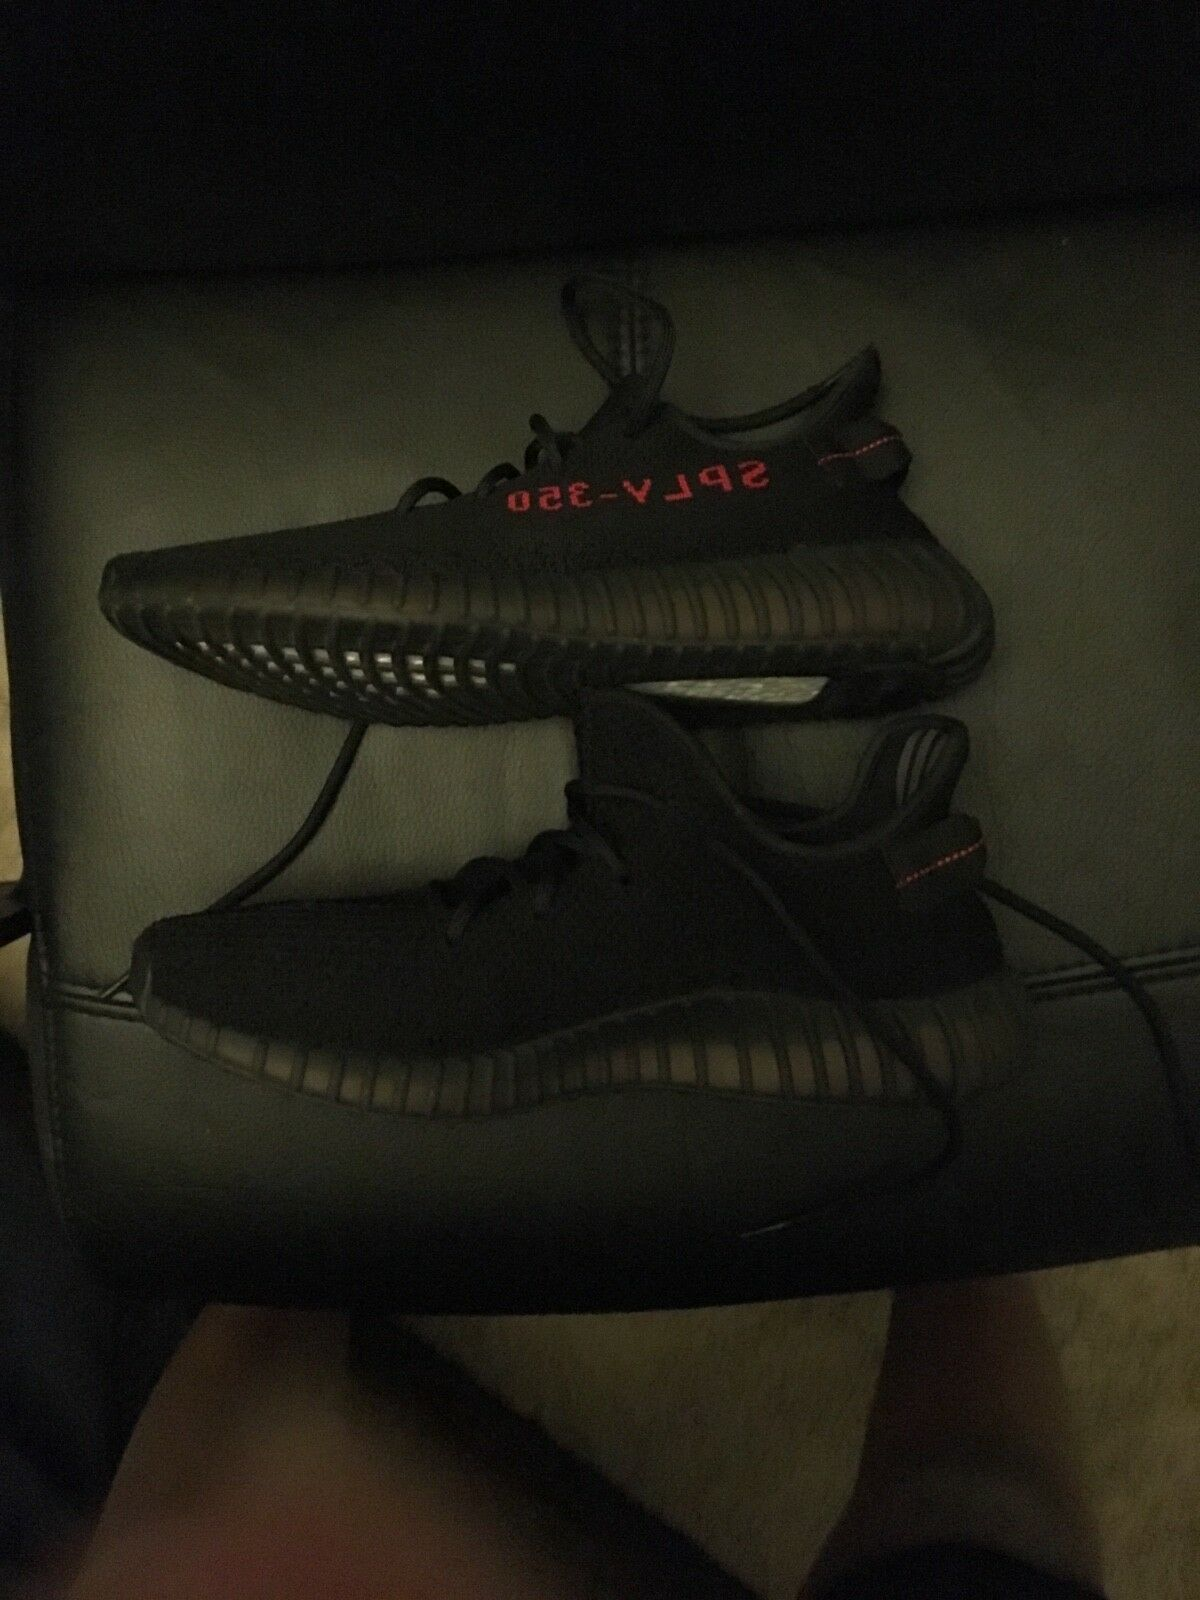 yeezy boost 350 v2 bred size 10.5